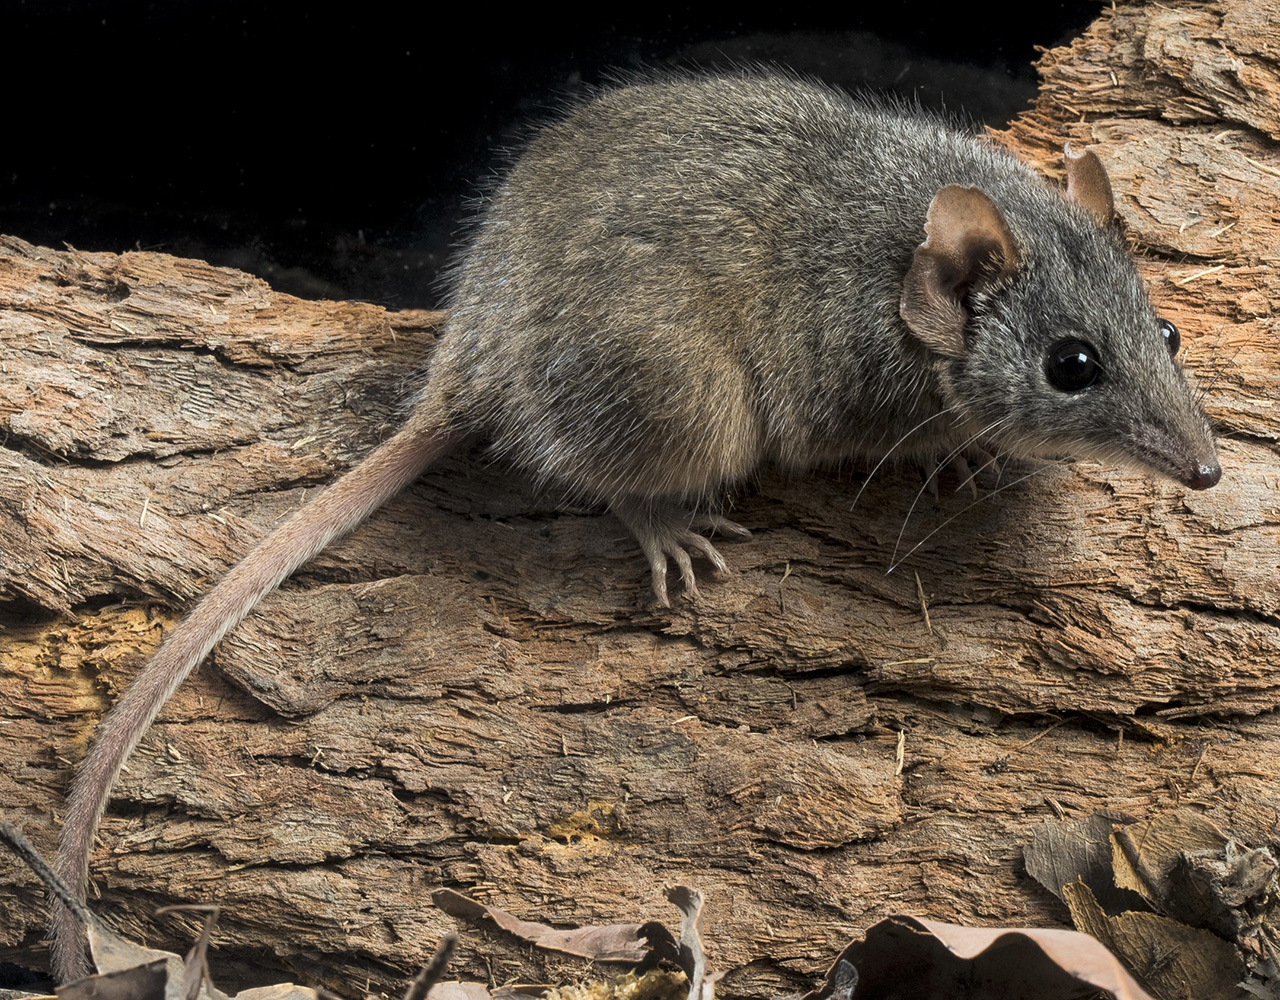 Moving mountains for the antechinus: The importance of food availability and high-elevation habitat